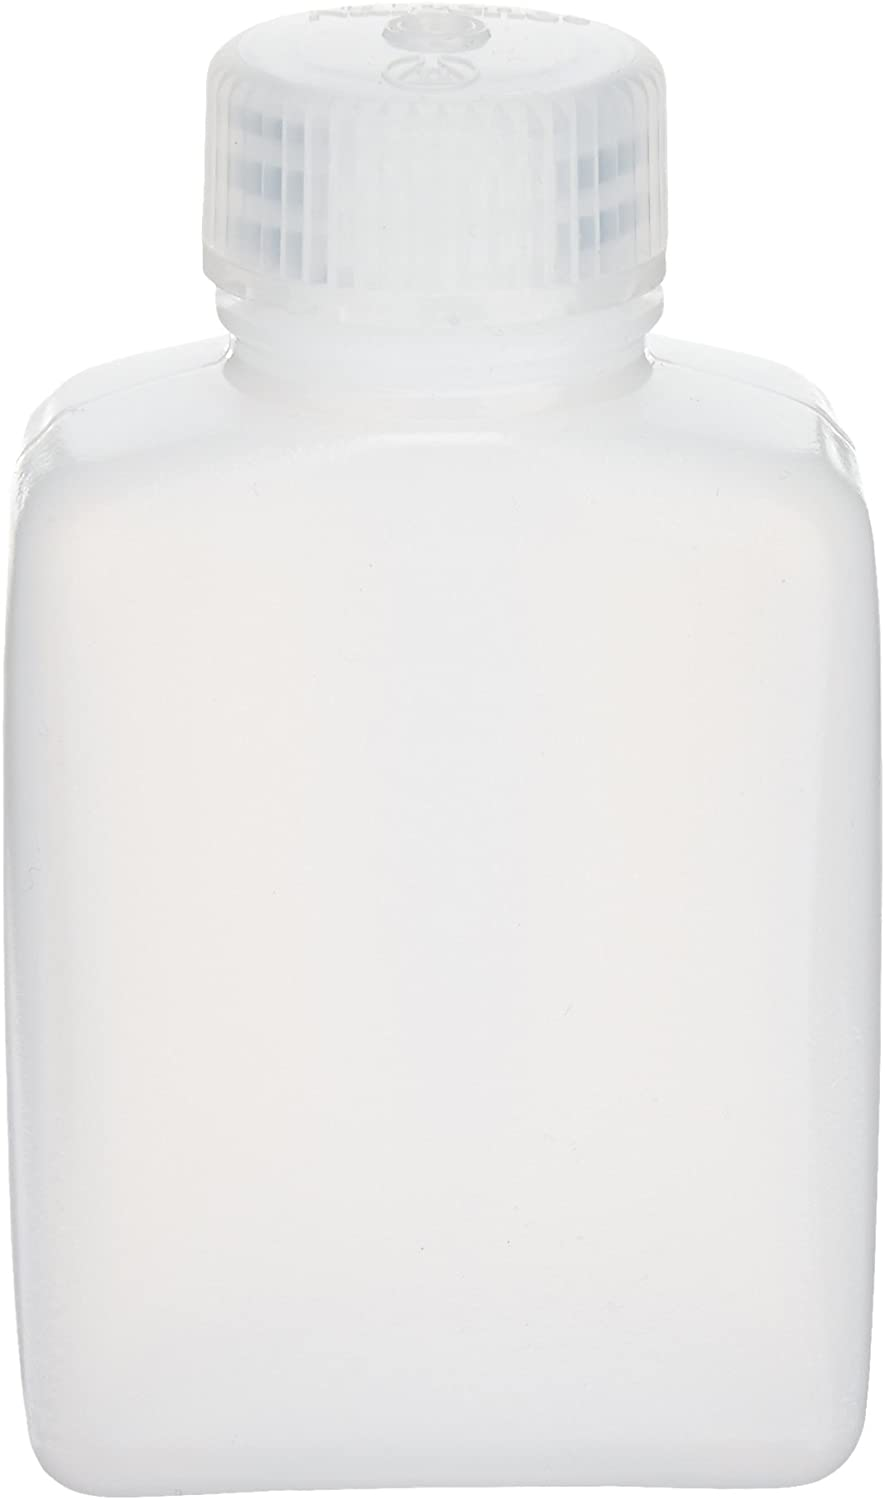 Nalgene Wide Mouth Botella Rectangular, 125 ml (4 Oz)